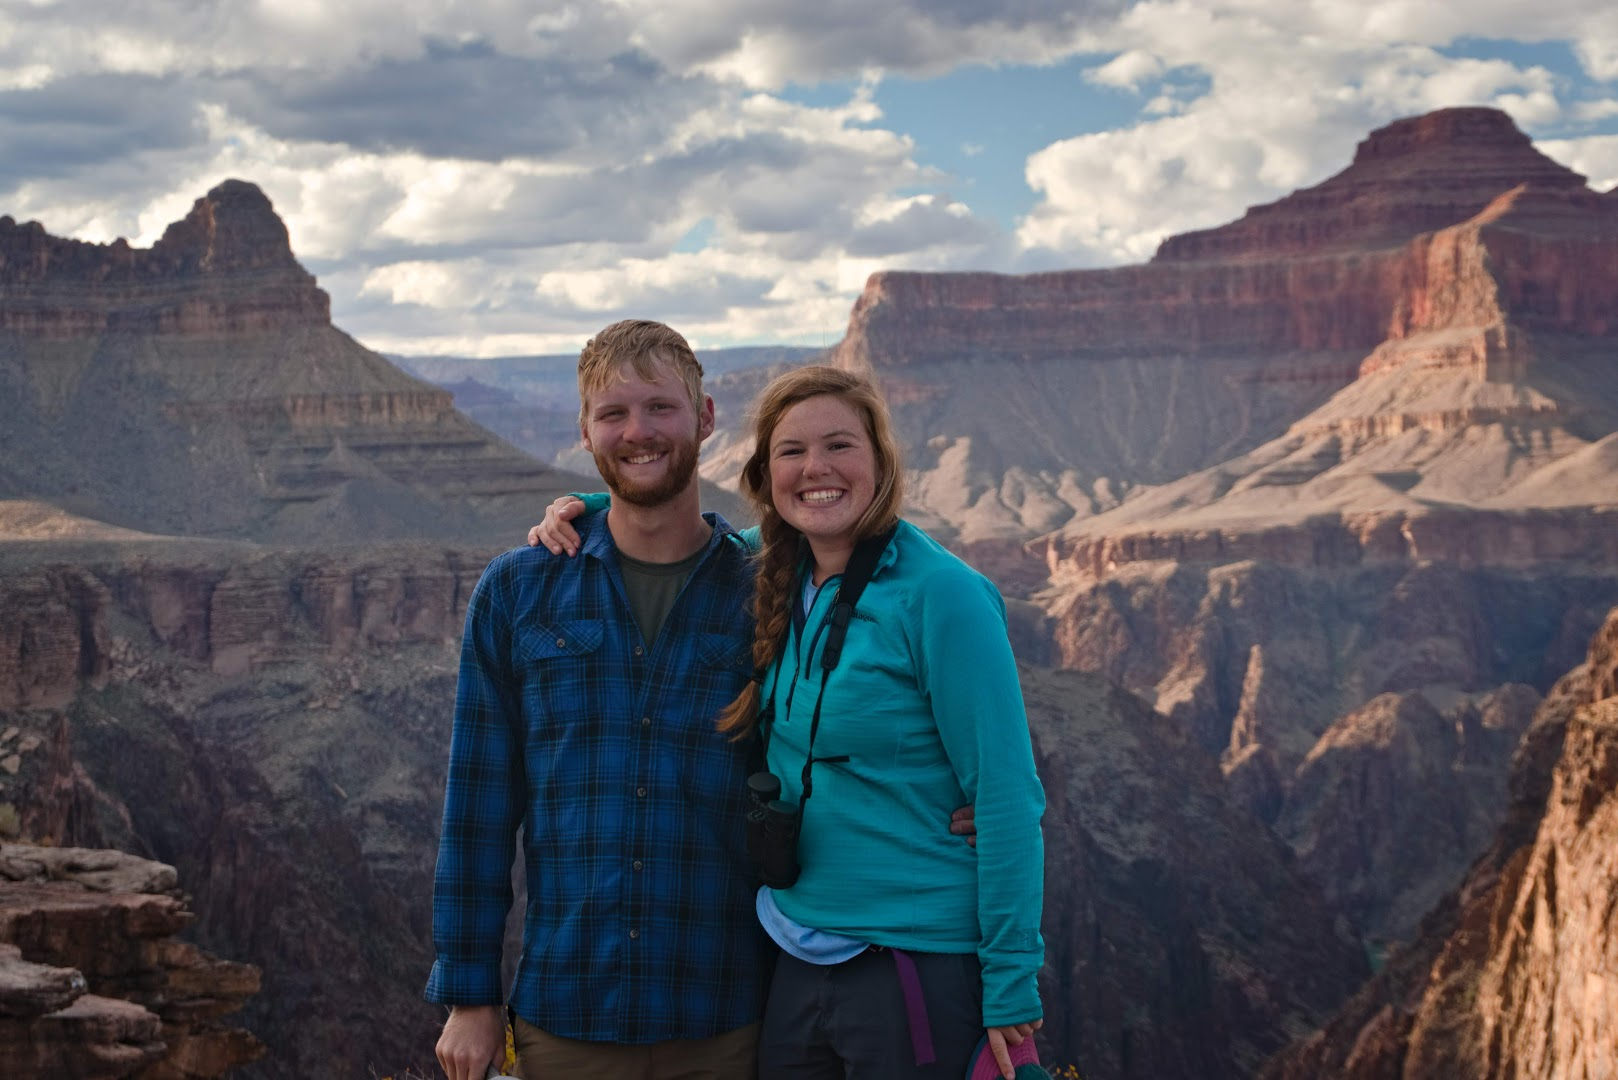 Nothing but smiles after few long days on the trail, Grand Canyon National Park, Arizona